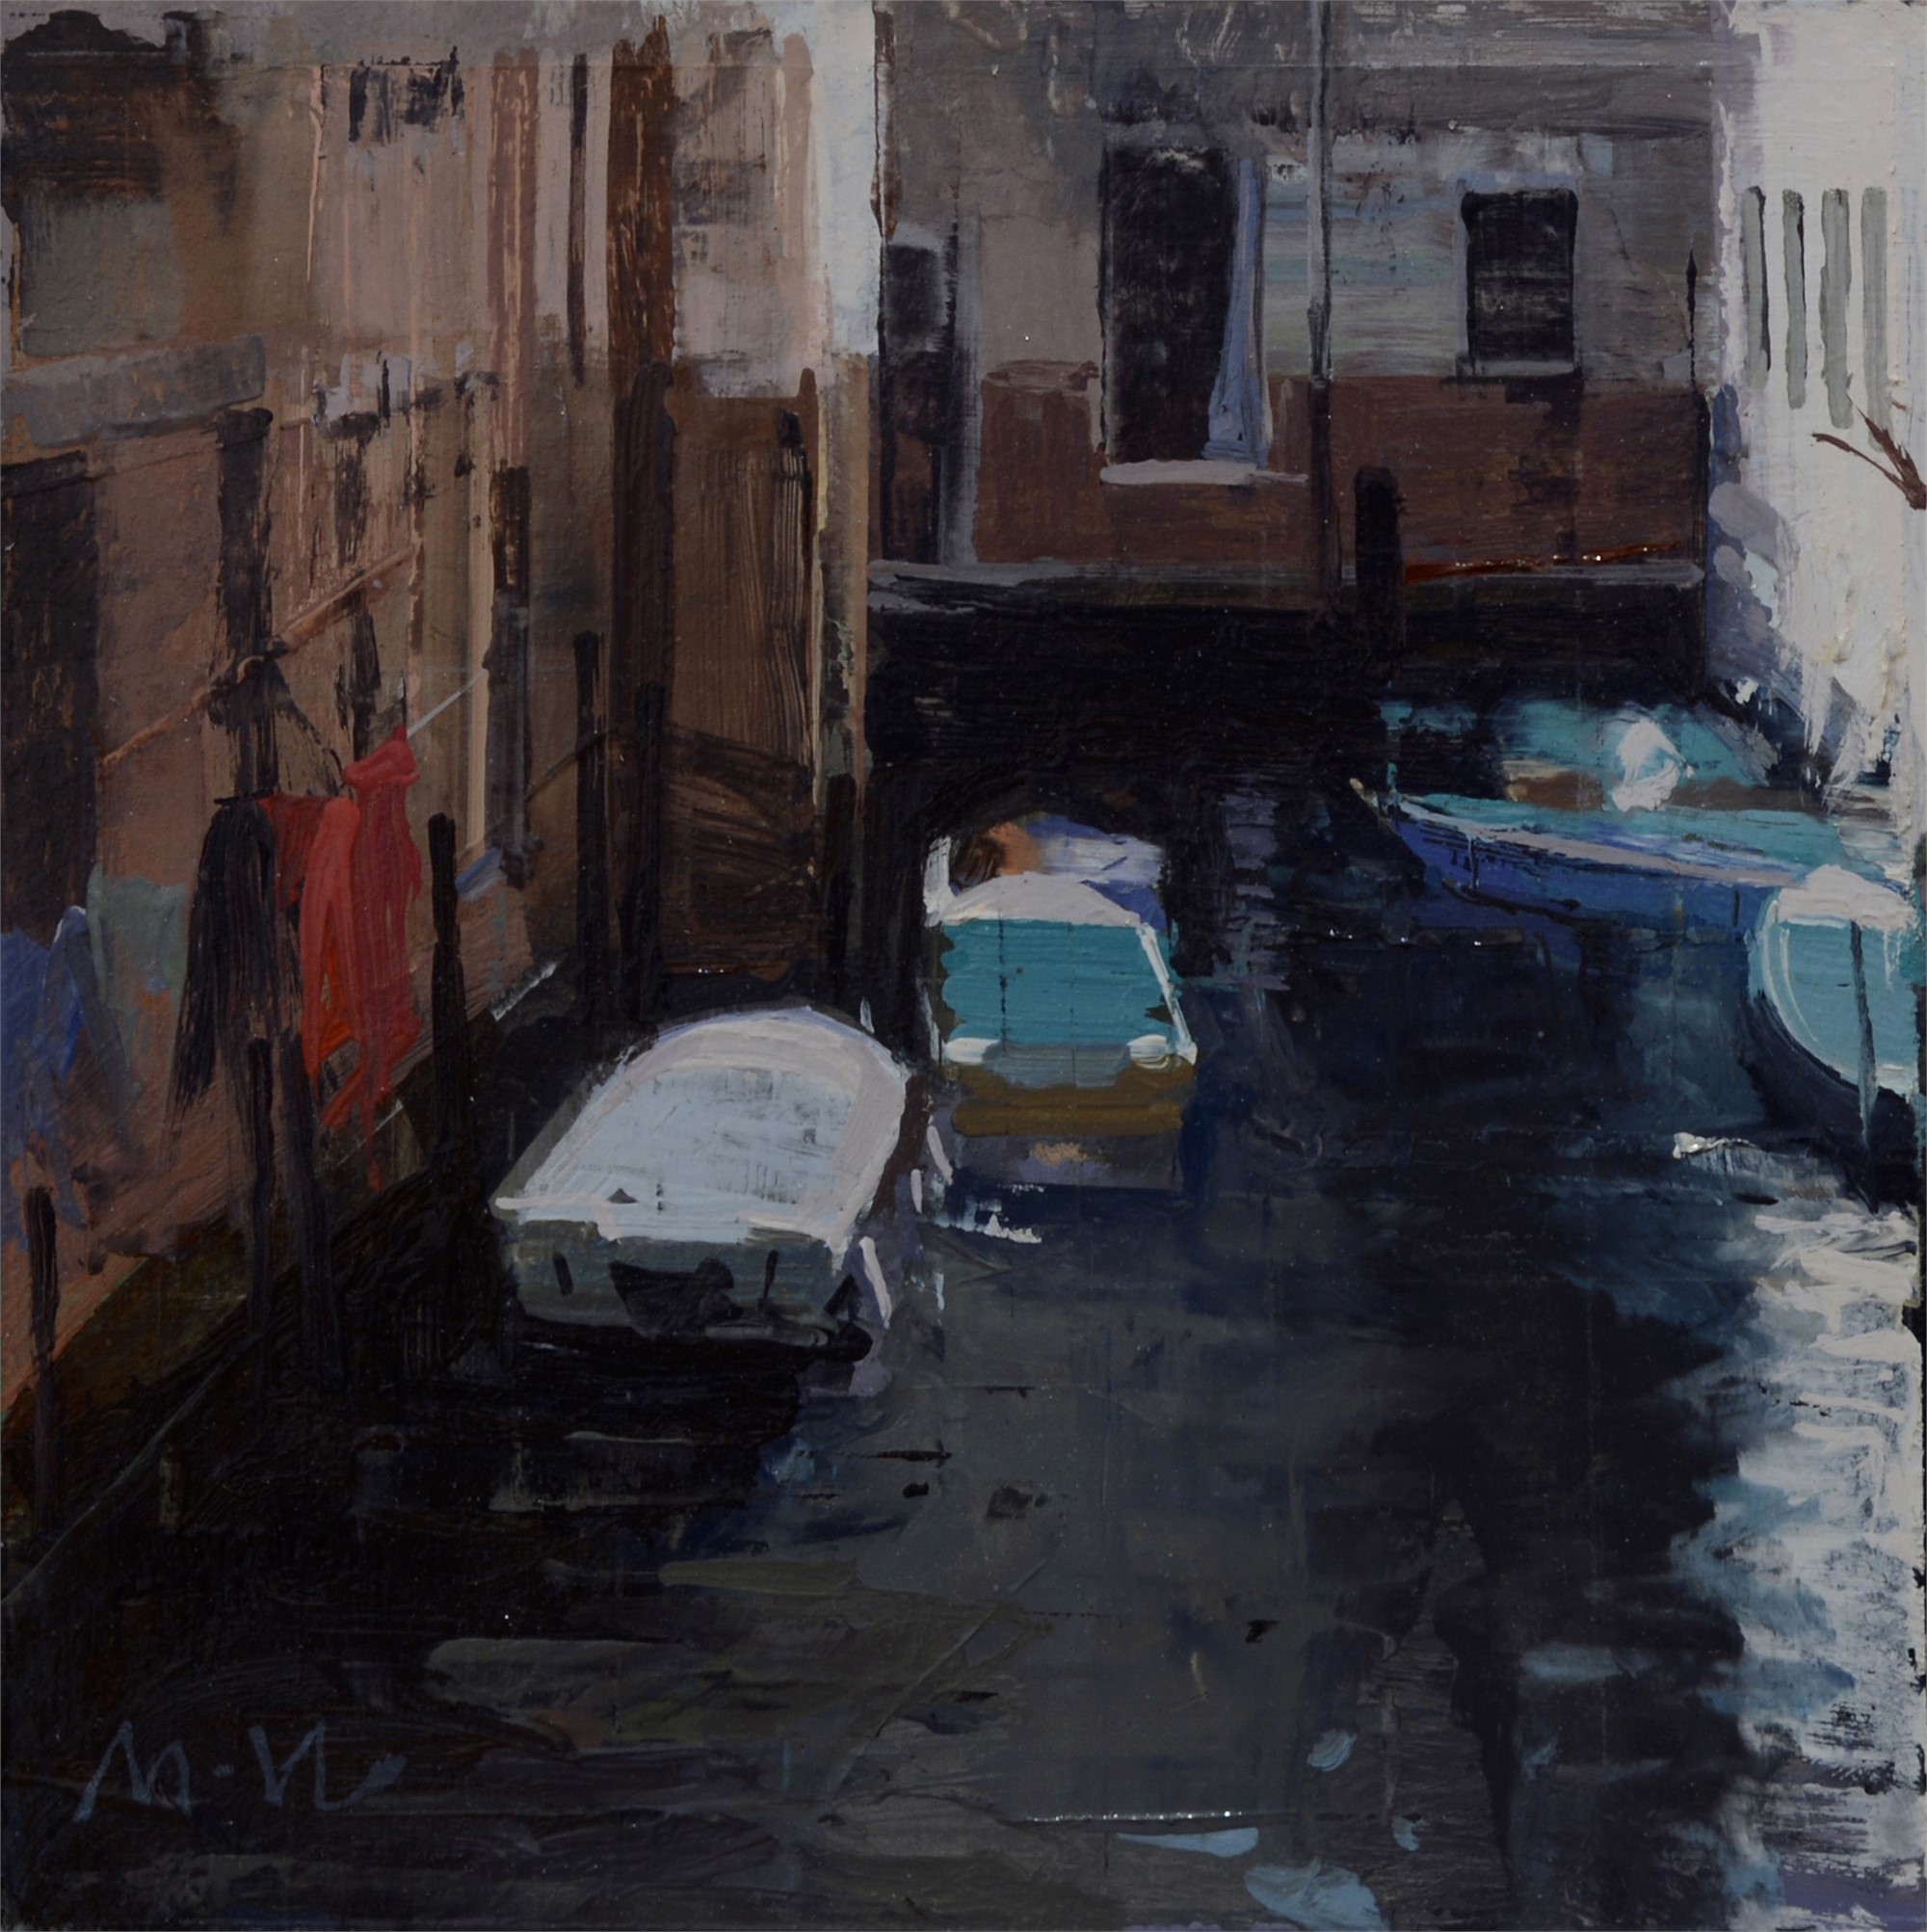 Canal Sketch 2 by Michael Workman